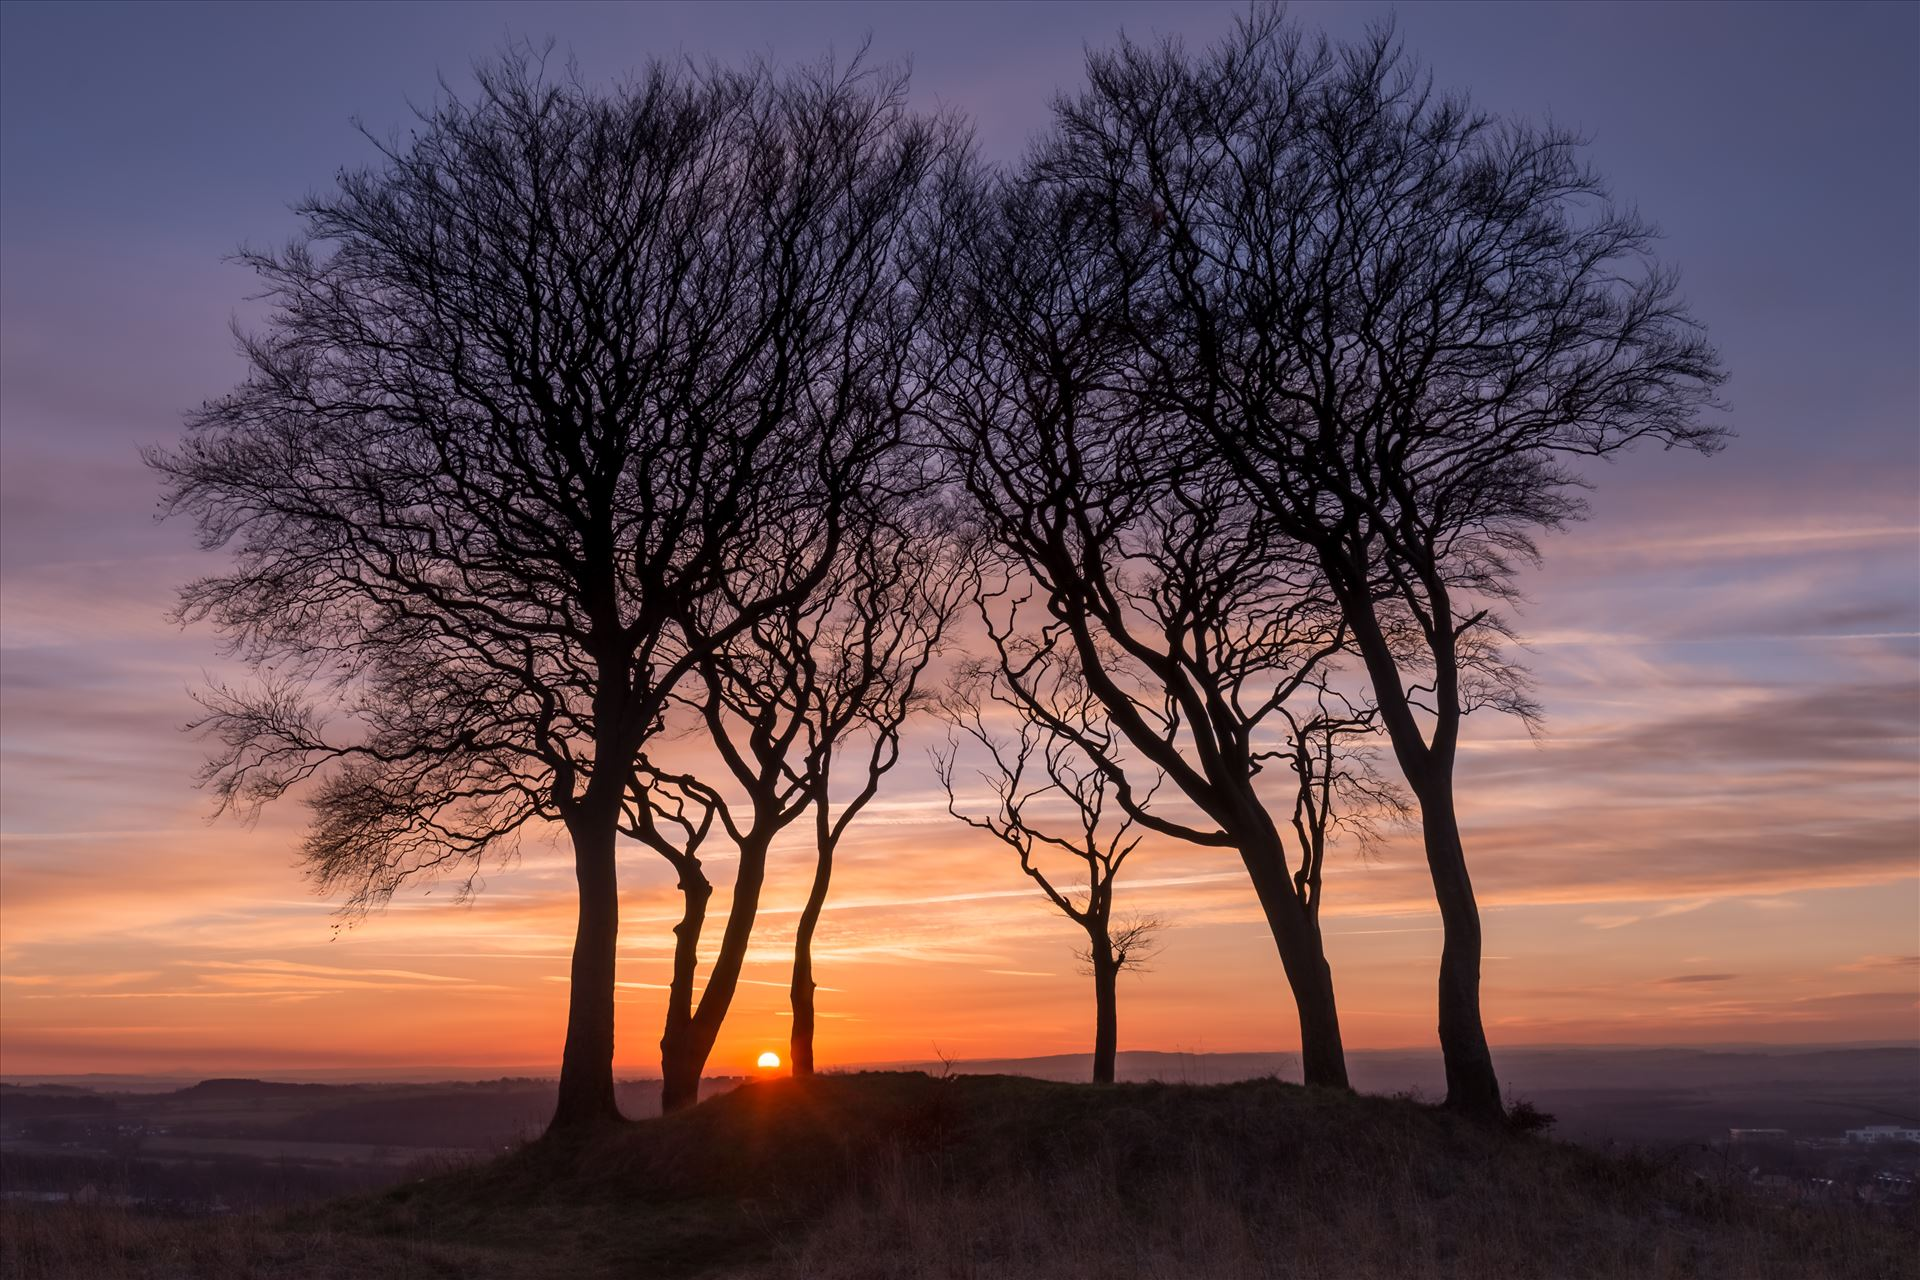 Sunset at Copt Hill - Copt Hill is an ancient burial ground near Houghton-le-Spring. The site is marked by six trees. Presumably there used to be a seventh tree, as they are known as the Seven Sisters. by philreay